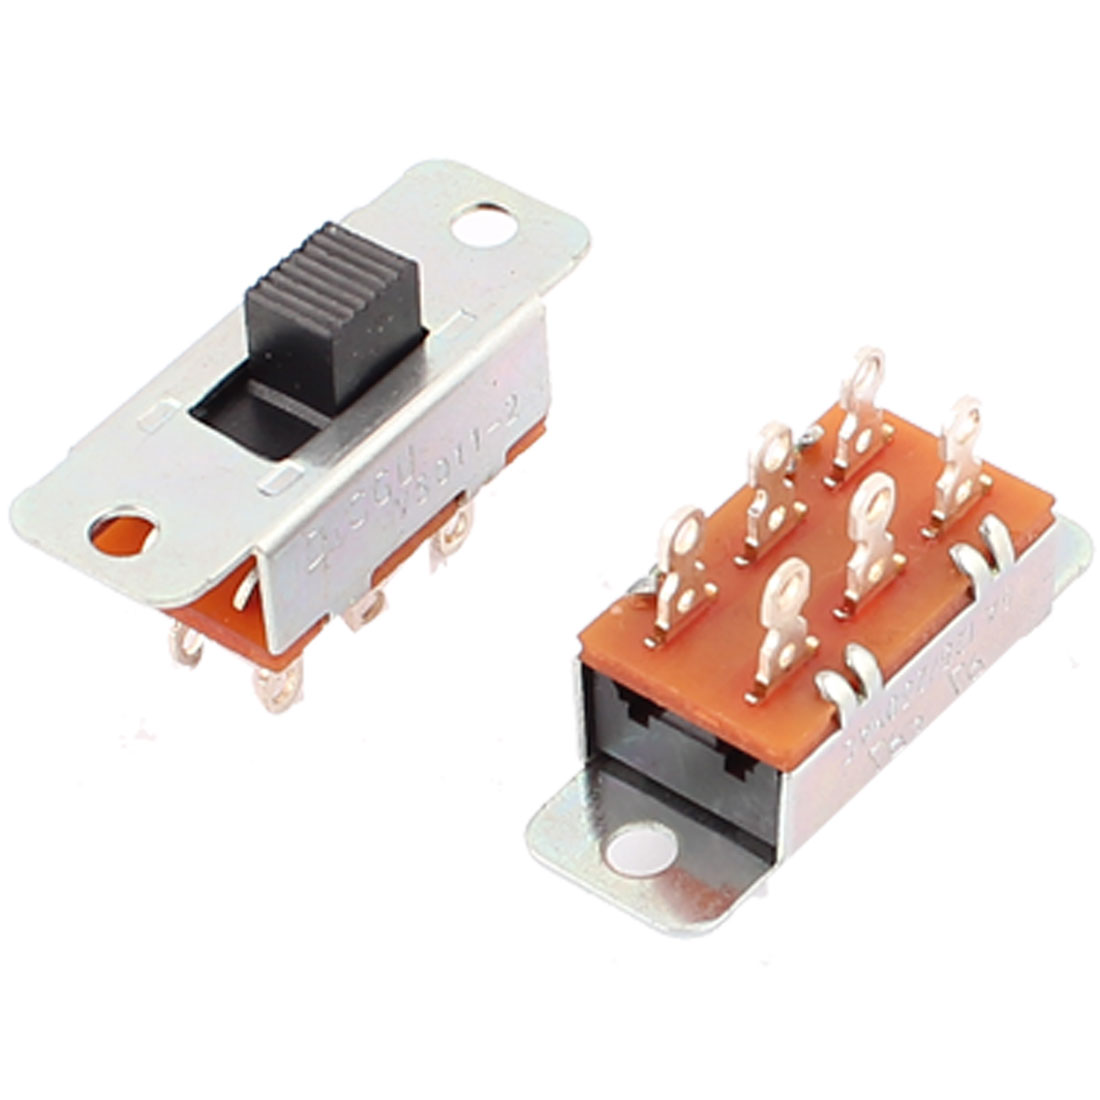 2Pcs AC 125V/250V 6A 2 Position ON/OFF 6 Pin DPDT Panel Mount Vertical Slide Switches